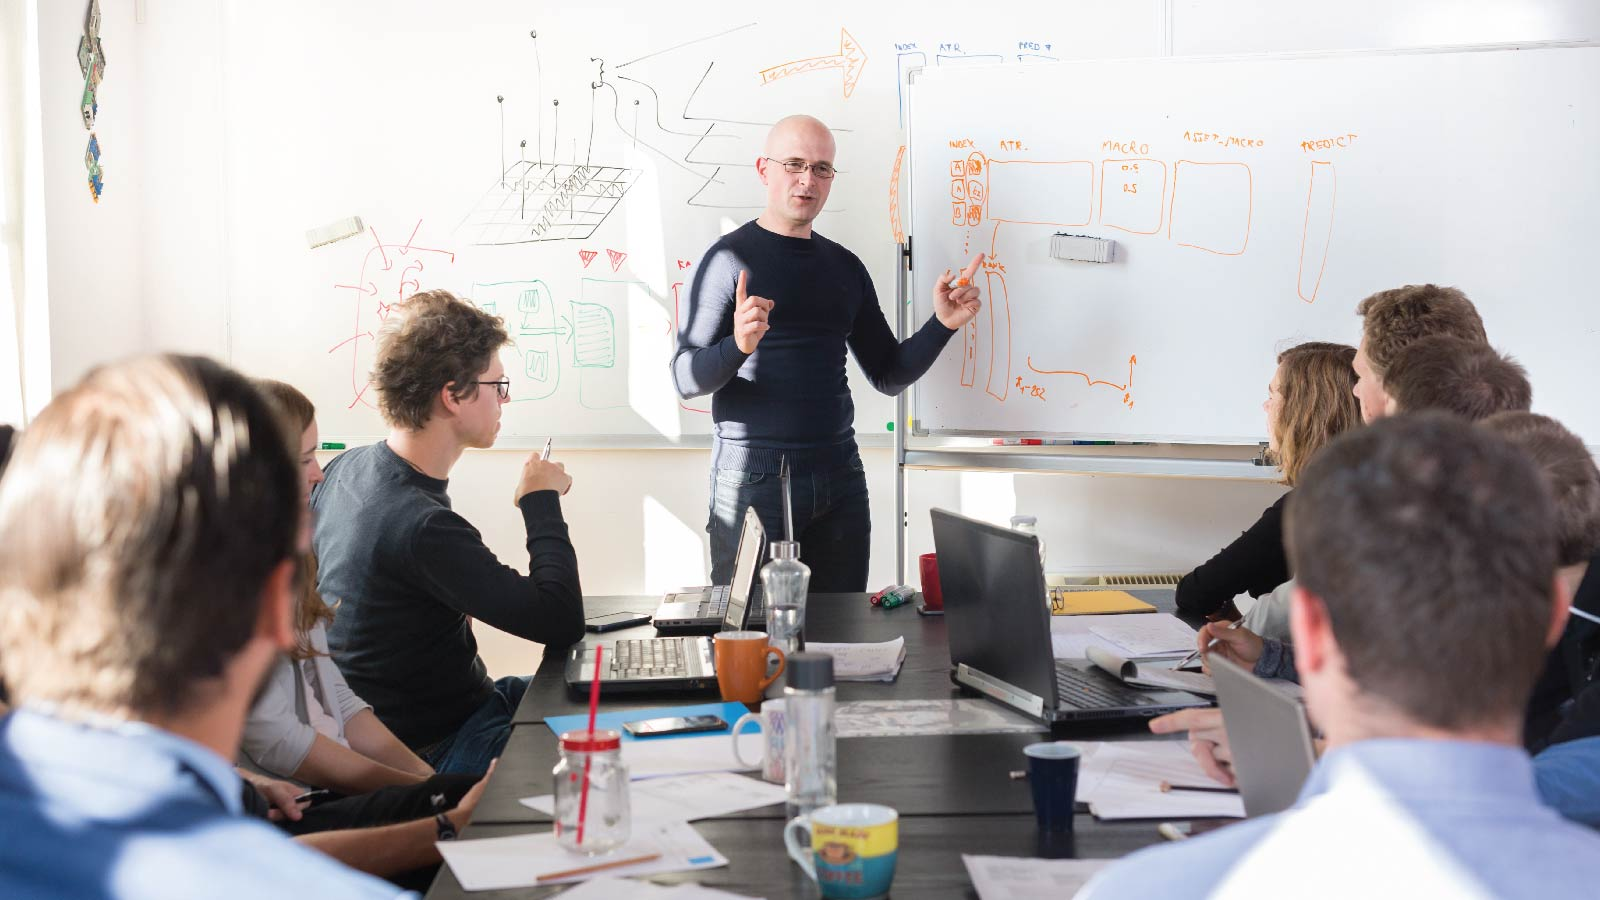 CIOs are Eager to Engage with Startups for Innovation Opportunities